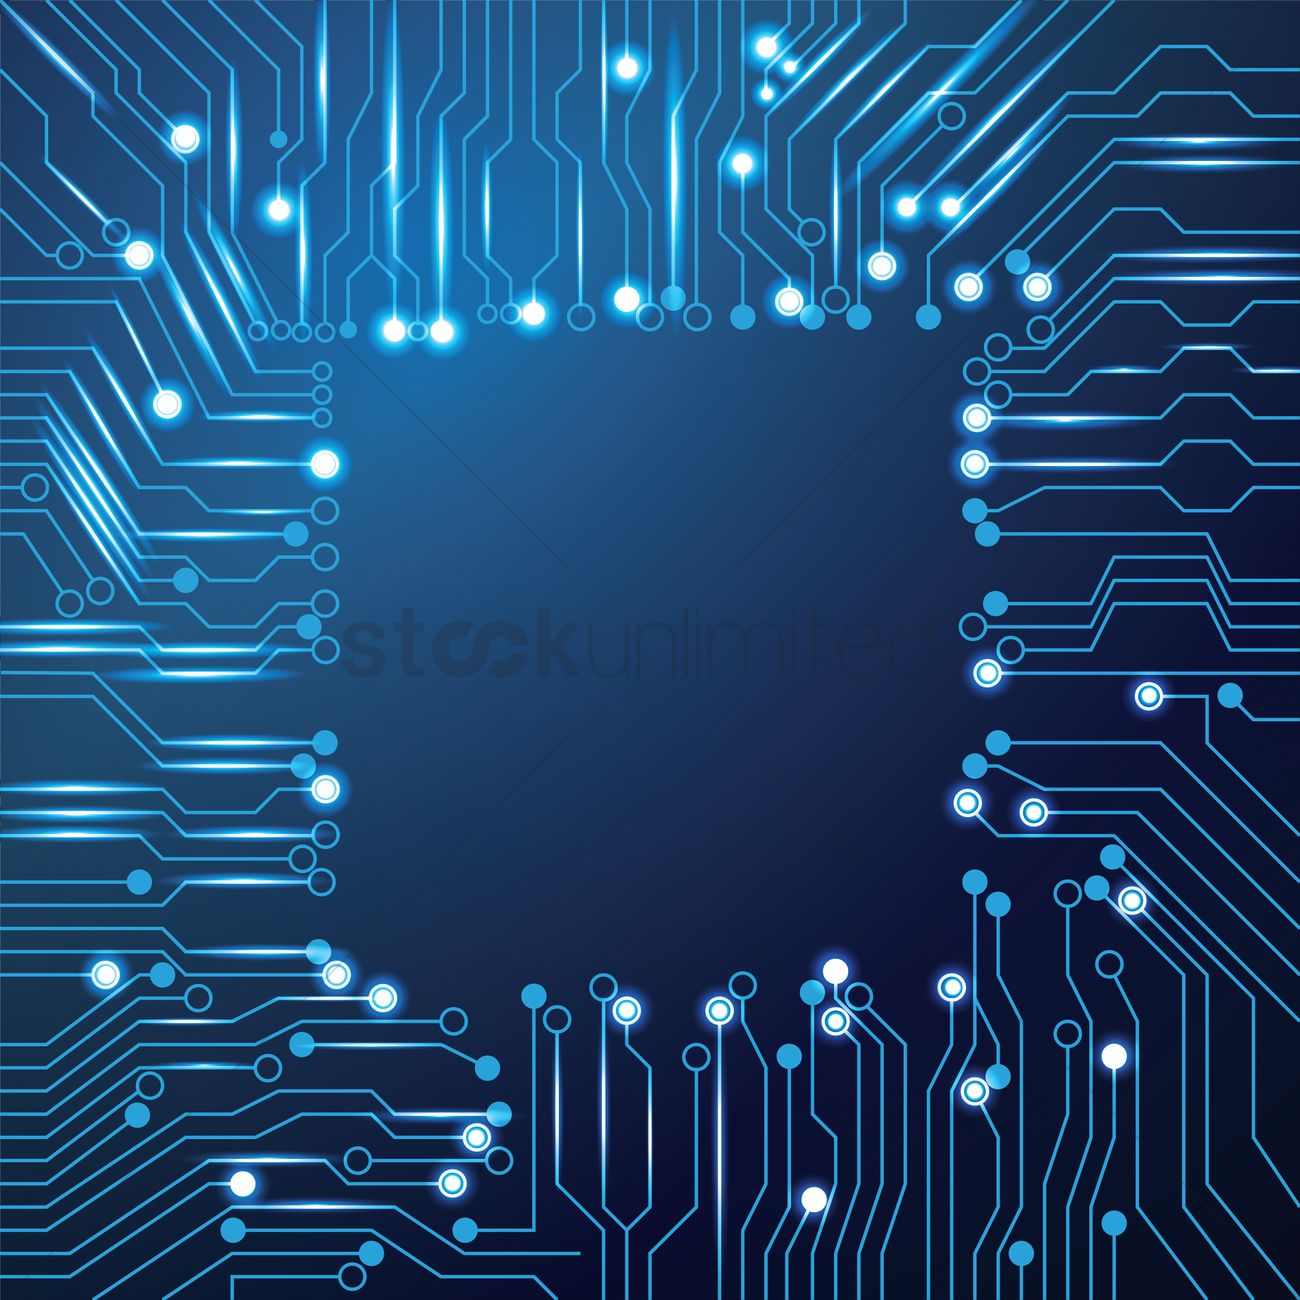 Chip Design On Circuit Board Wallpaper Vector Image